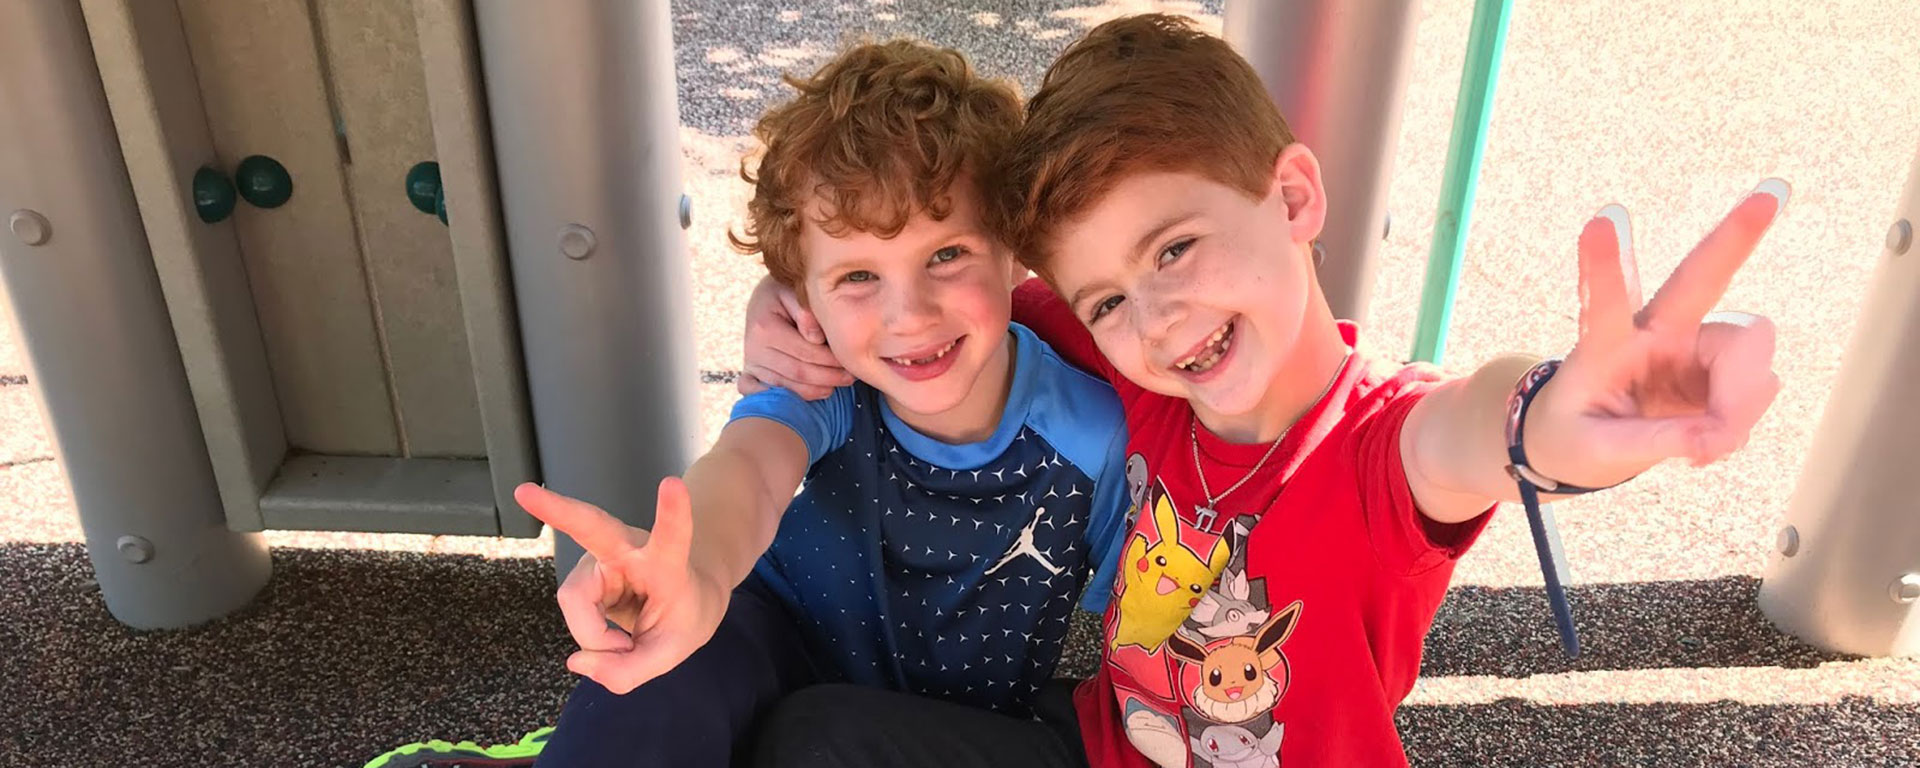 Two boys at recess showing a peace sign at The Rashi School, Reform Jewish K-8 Independent School